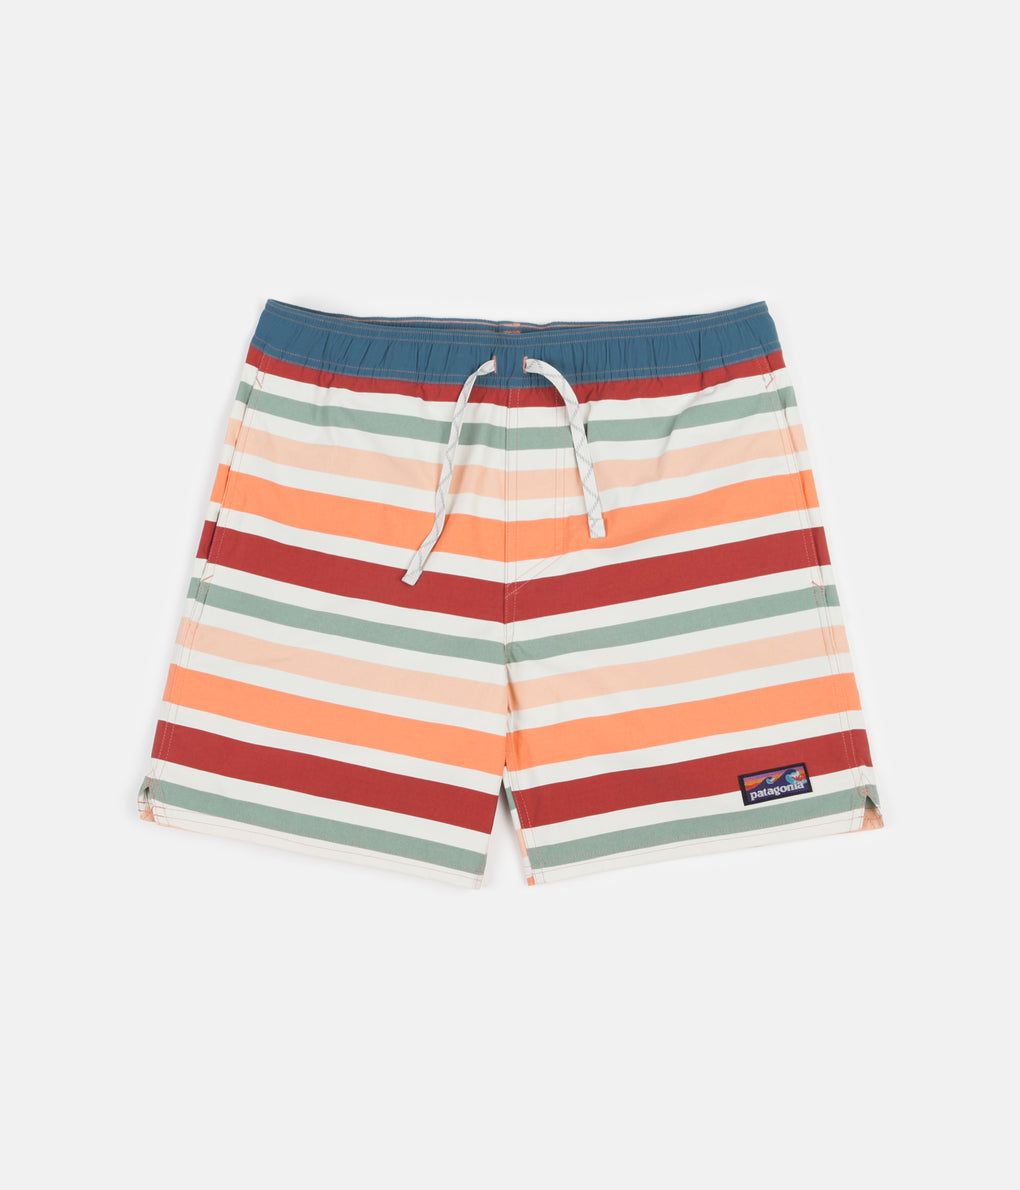 "Patagonia Stretch Wavefarer 16"" Volley Shorts - Water Ribbons: New Adobe"